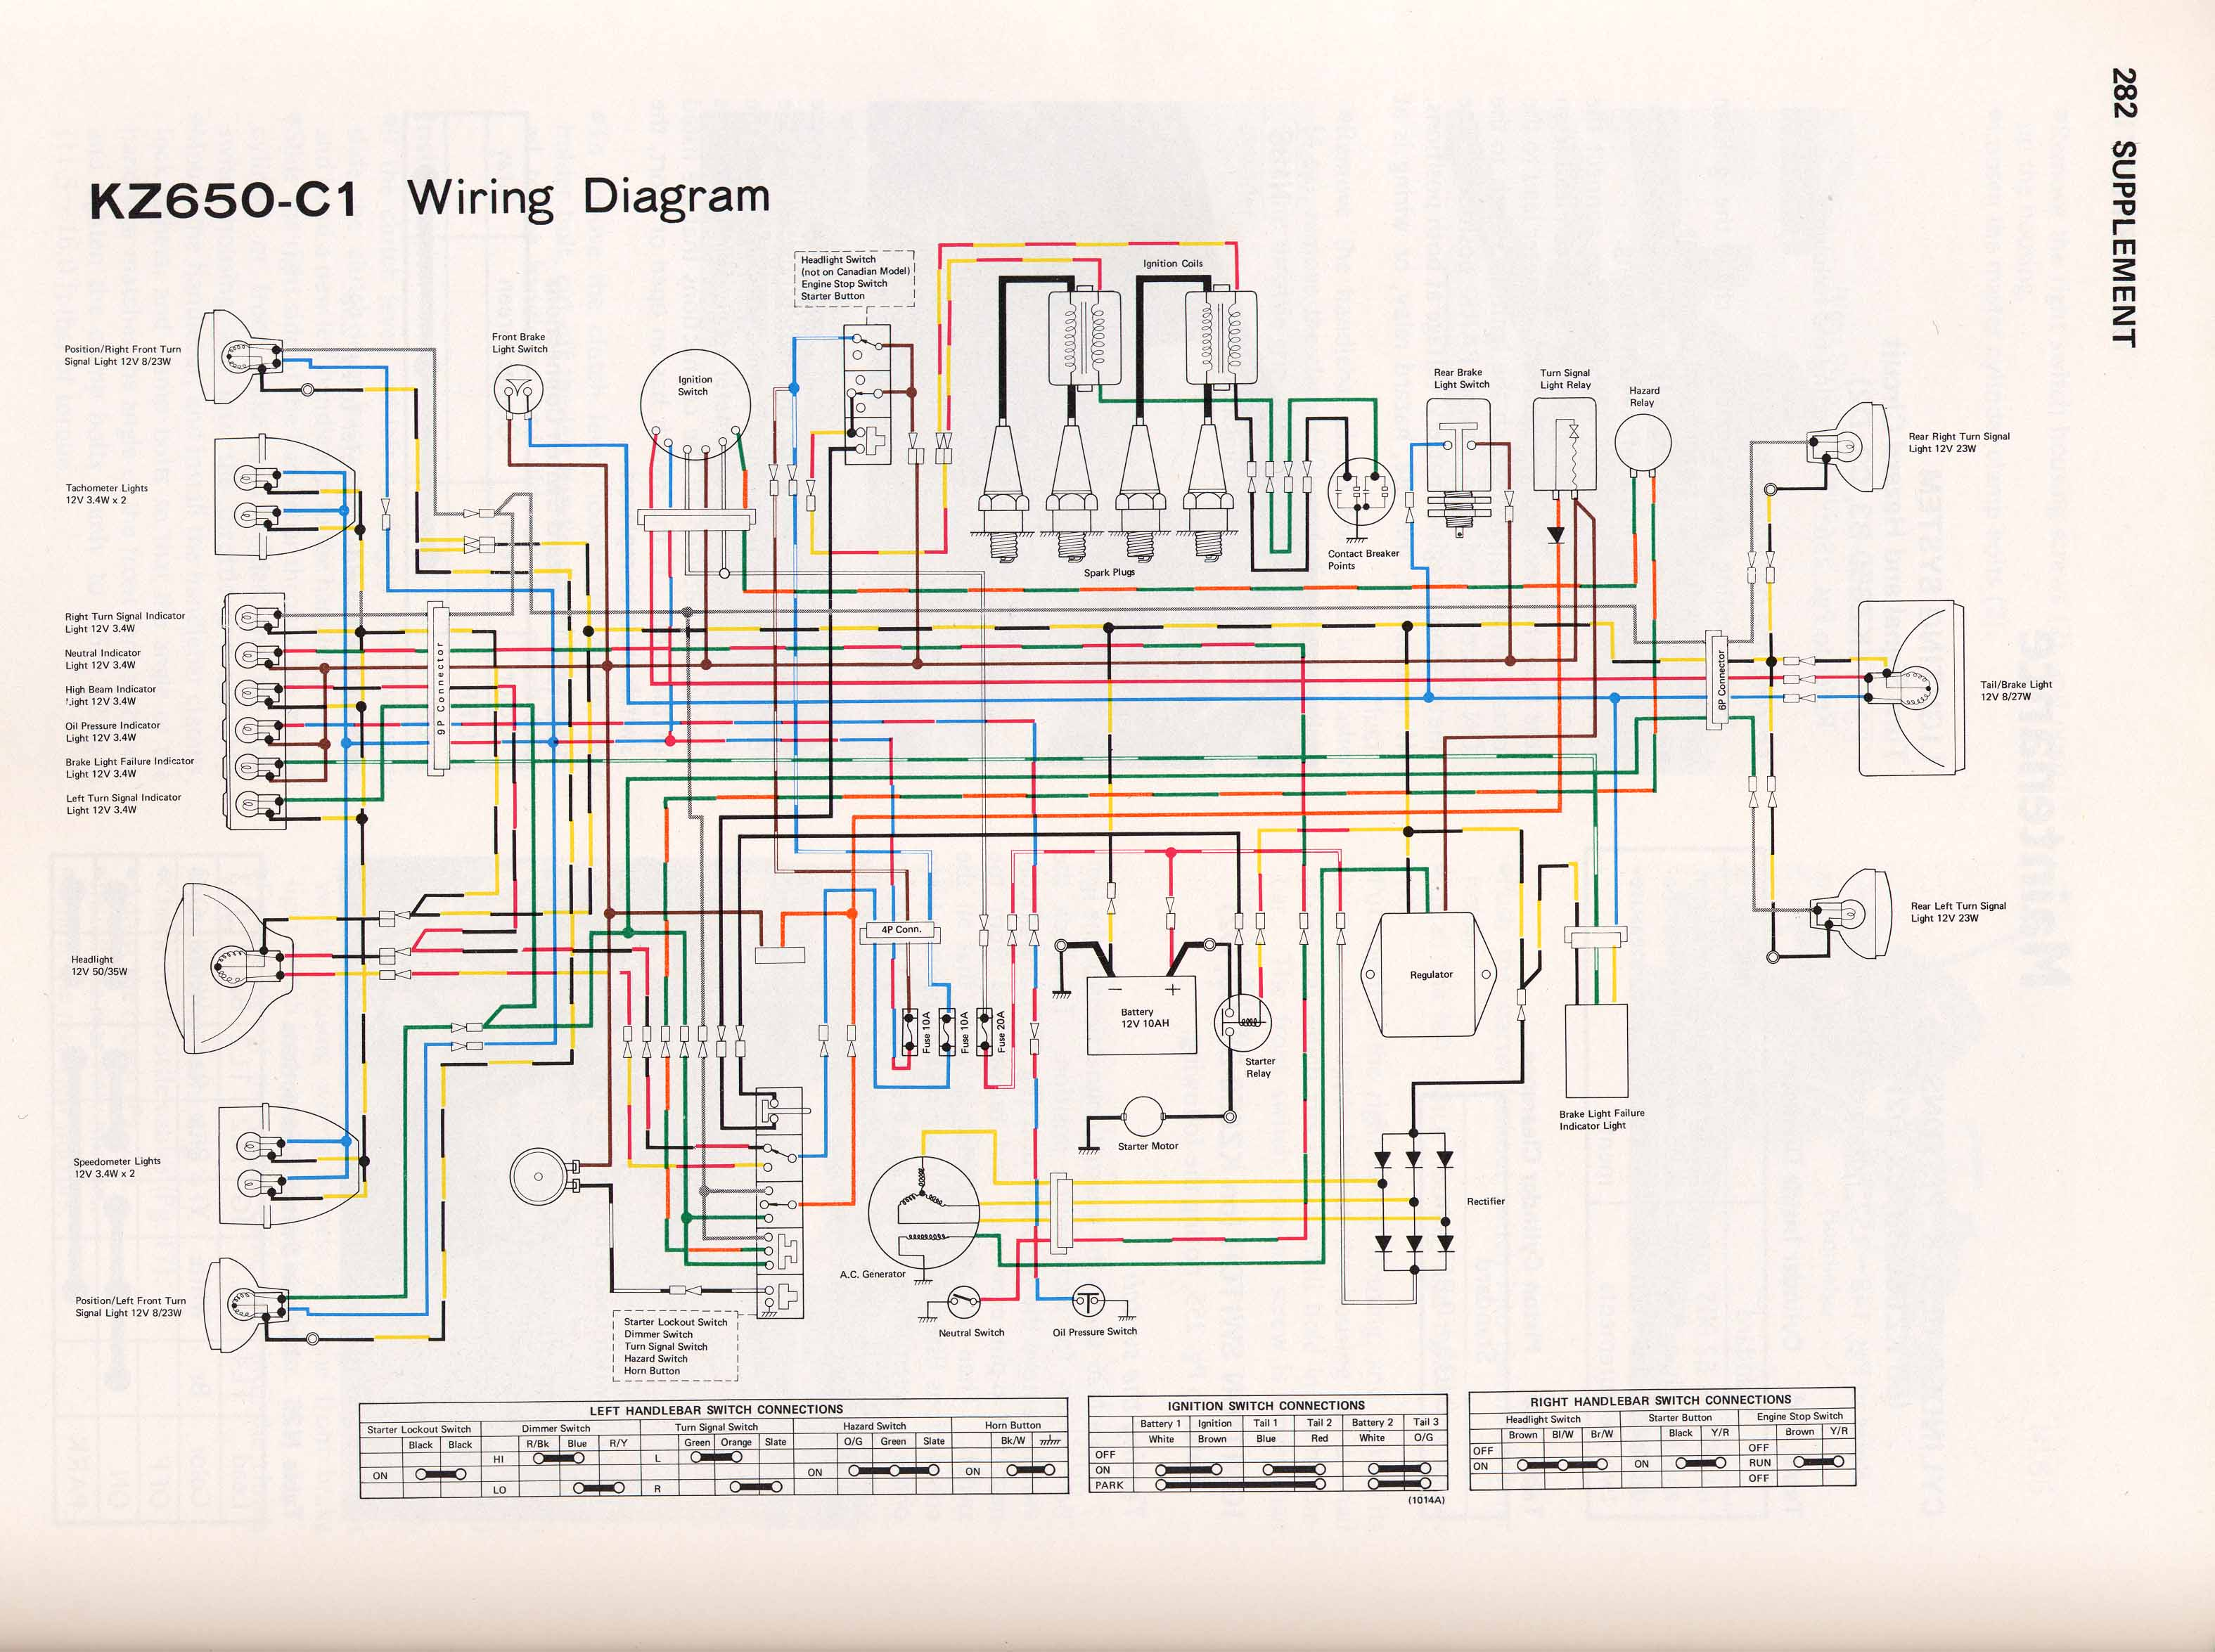 Wiring Diagram Kawasaki Z1000 Not Lossing Four Wheeler Wire For Starter Switch Electric And 1978 Diagrams Site Rh 1 Geraldsorger De 300 Atv Electrical